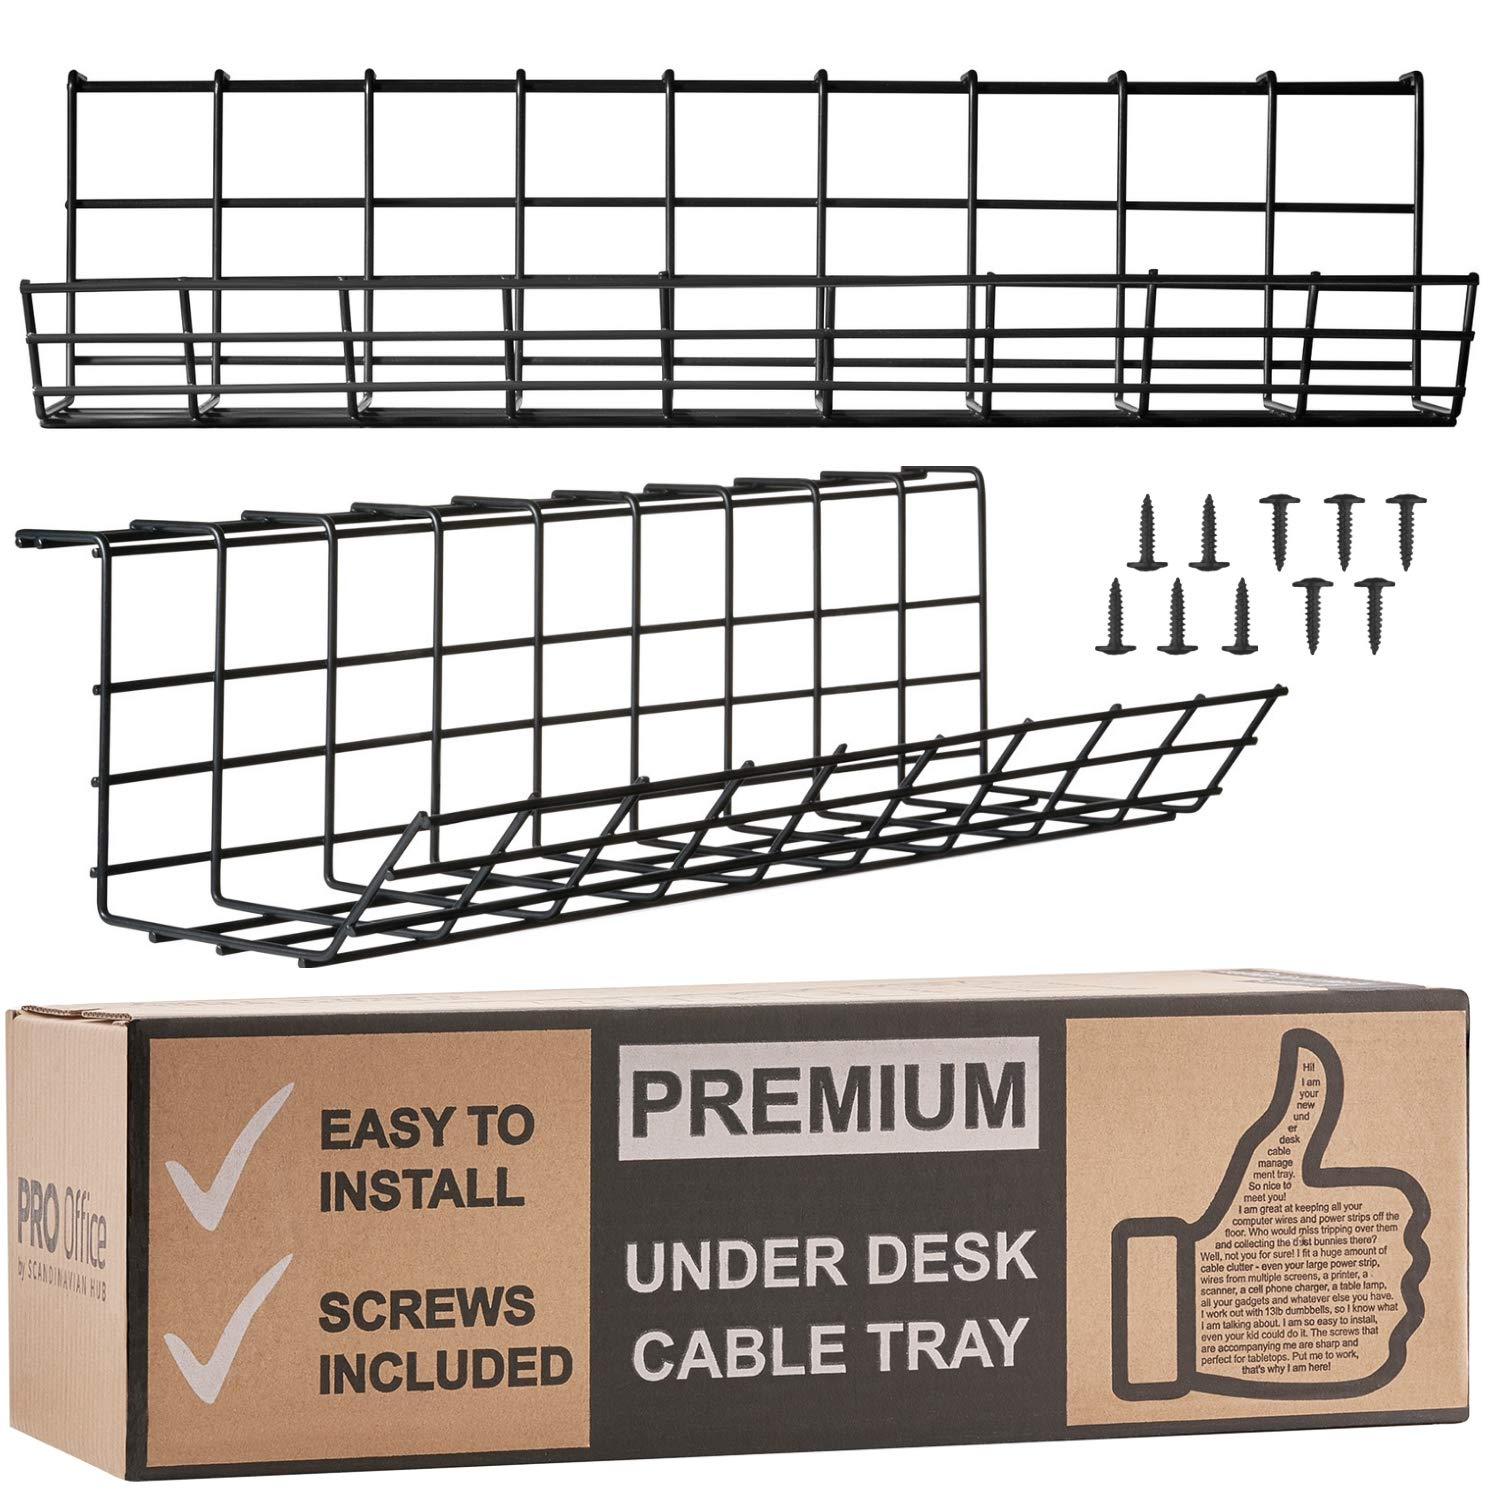 Under Desk Cable Management Tray - Cable Organizer for Wire Management. Metal Wire Cable Tray for Office and Home (Black 2 Pack) by Scandinavian Hub